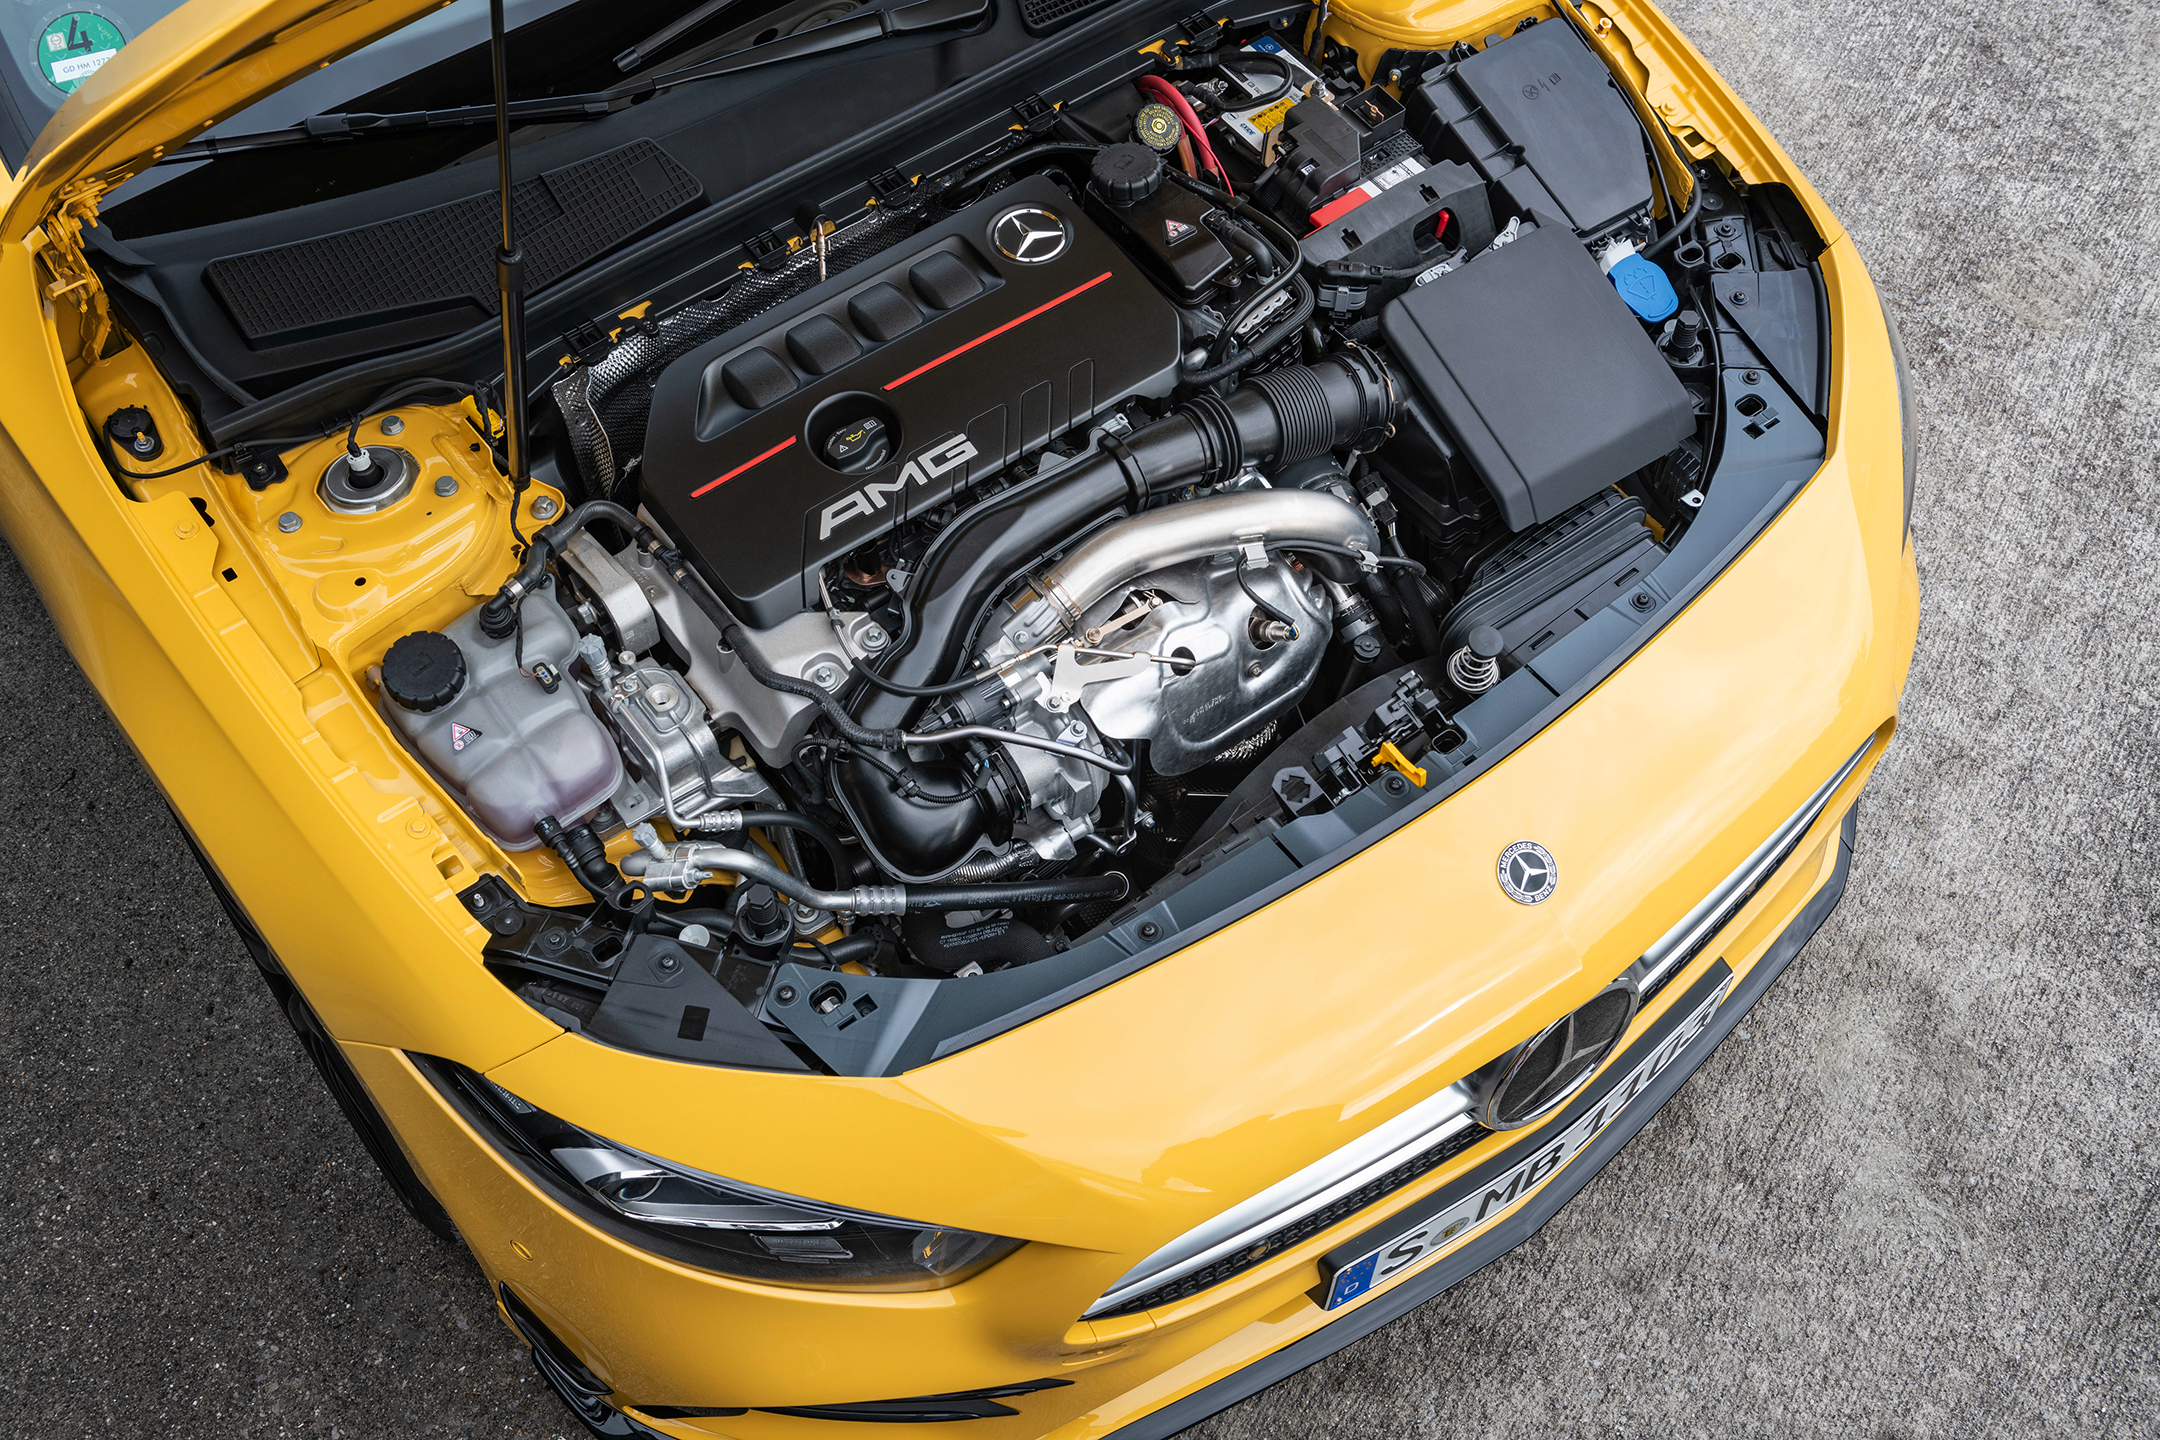 Mercedes-AMG A35 4MATIC - 2018 - under the hood - engine / moteur